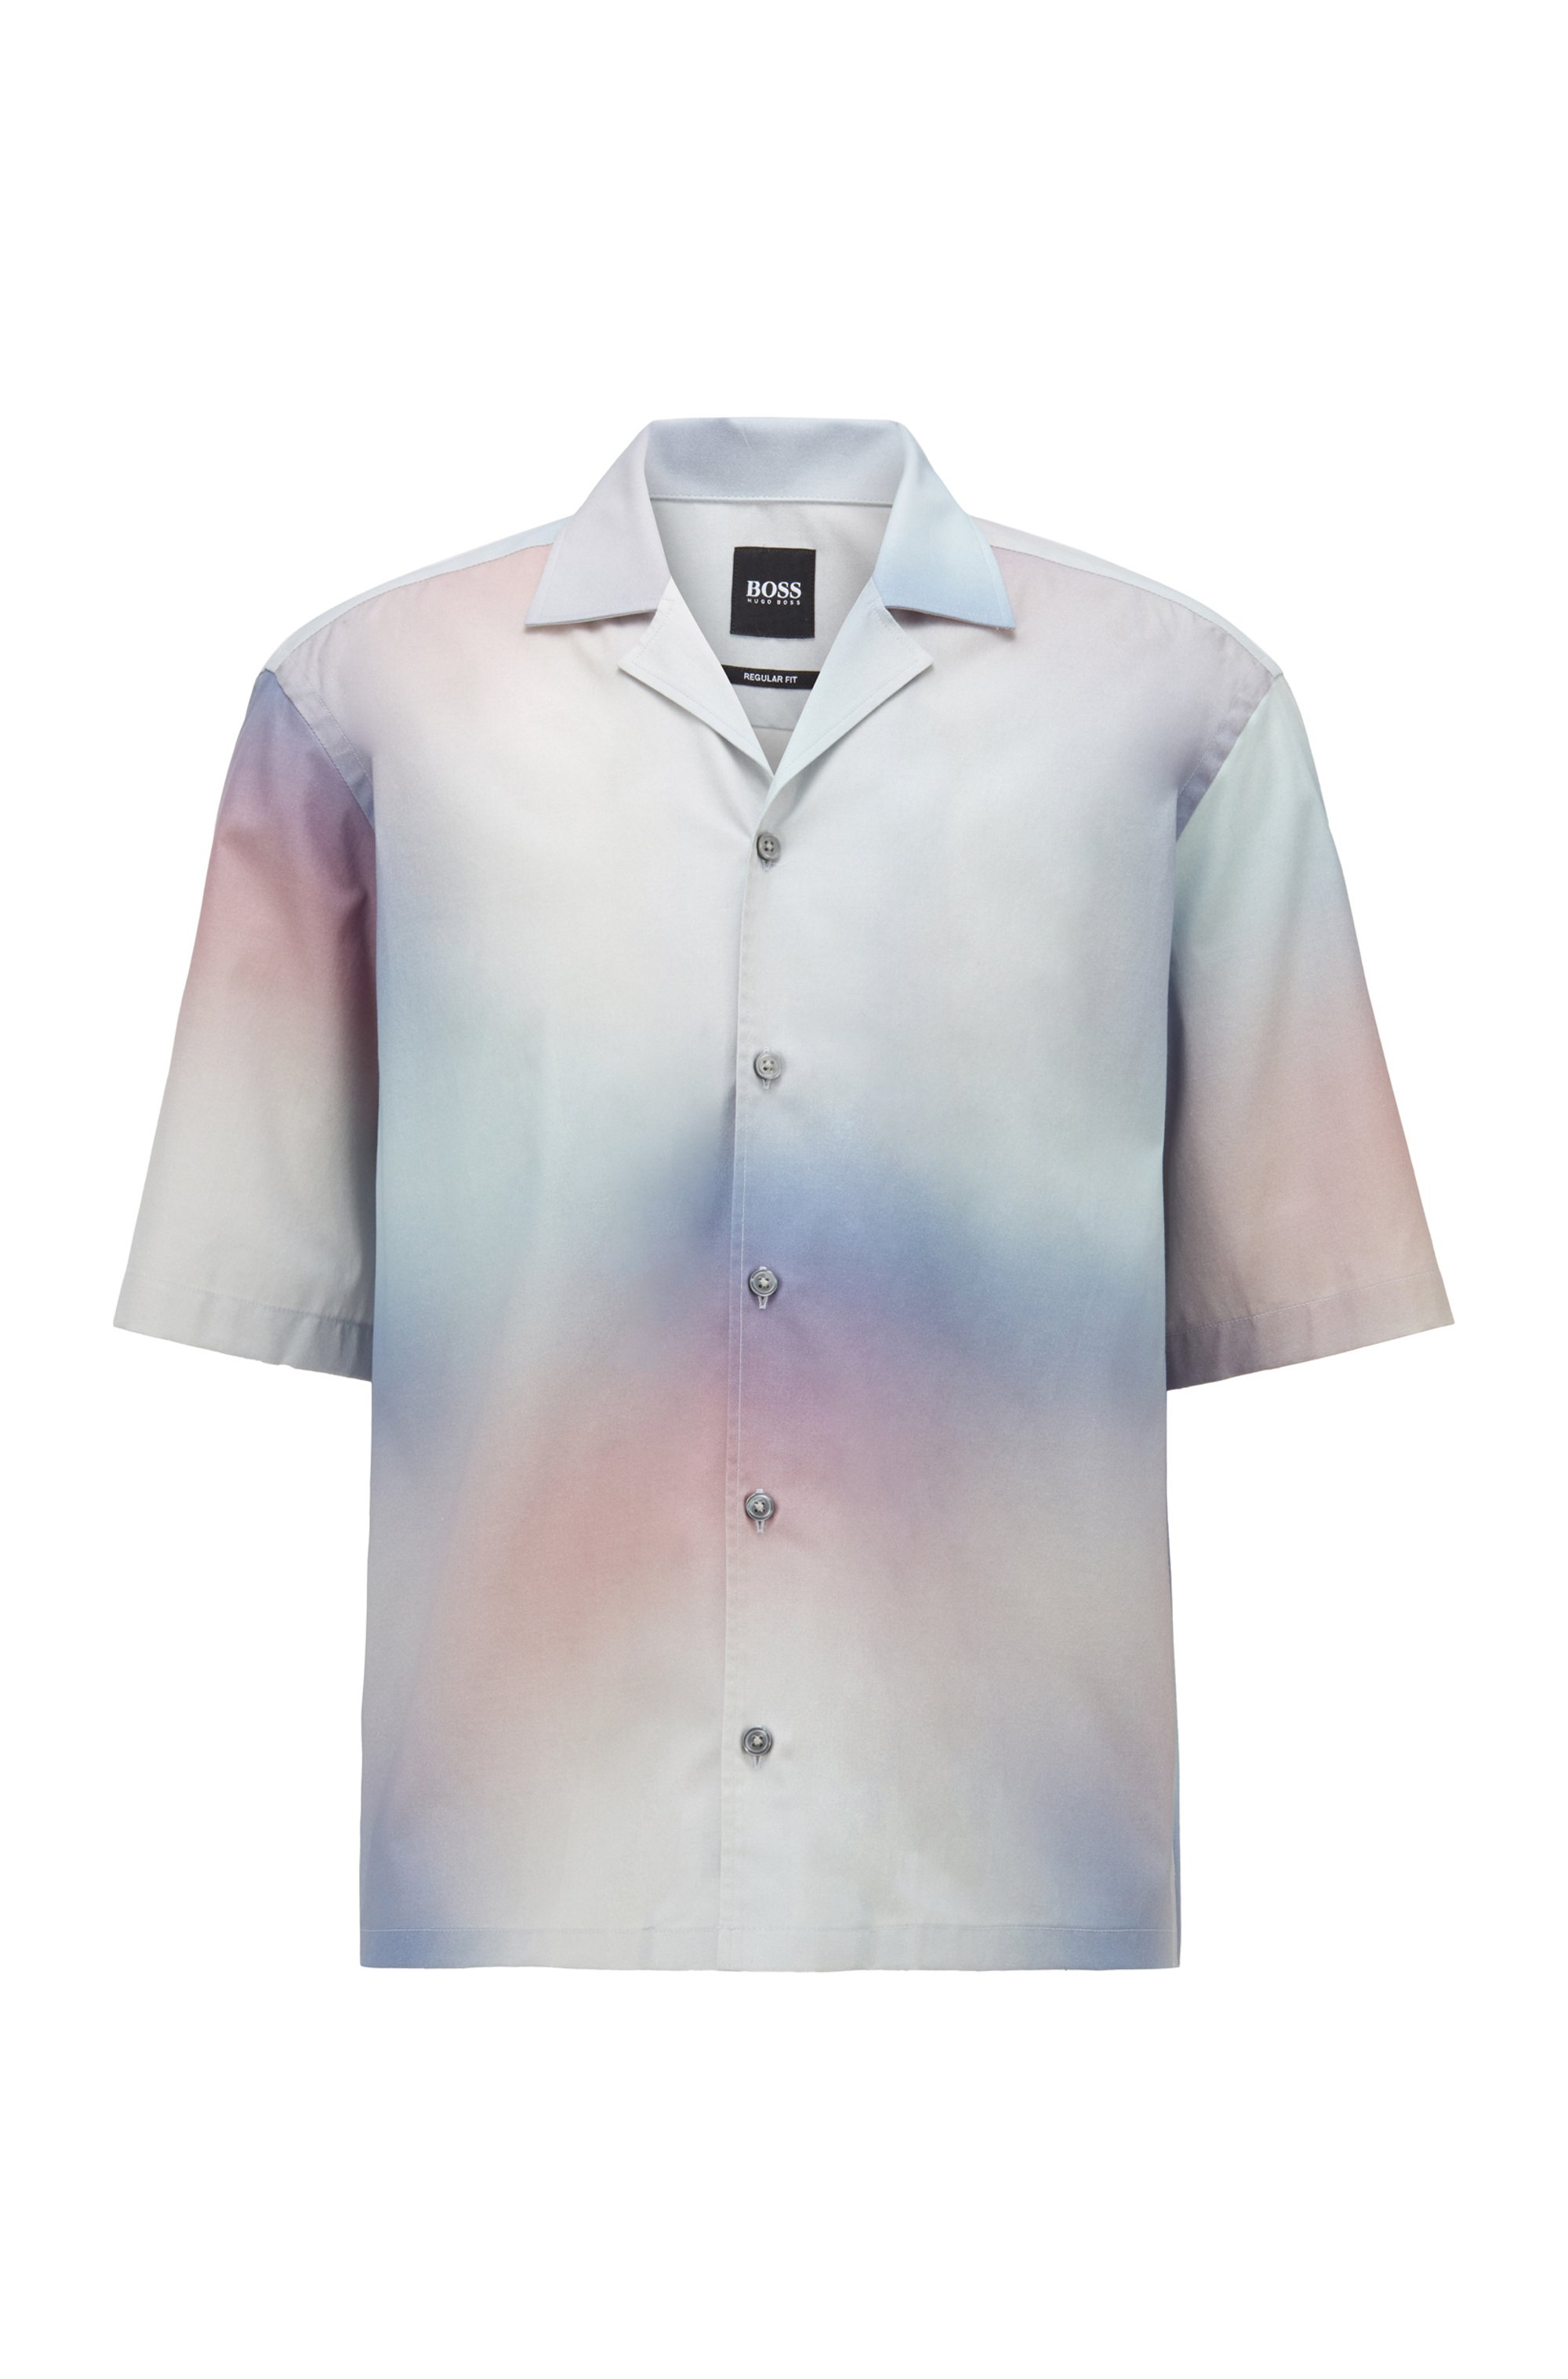 Regular-fit shirt in stretch cotton with gradient print, Patterned